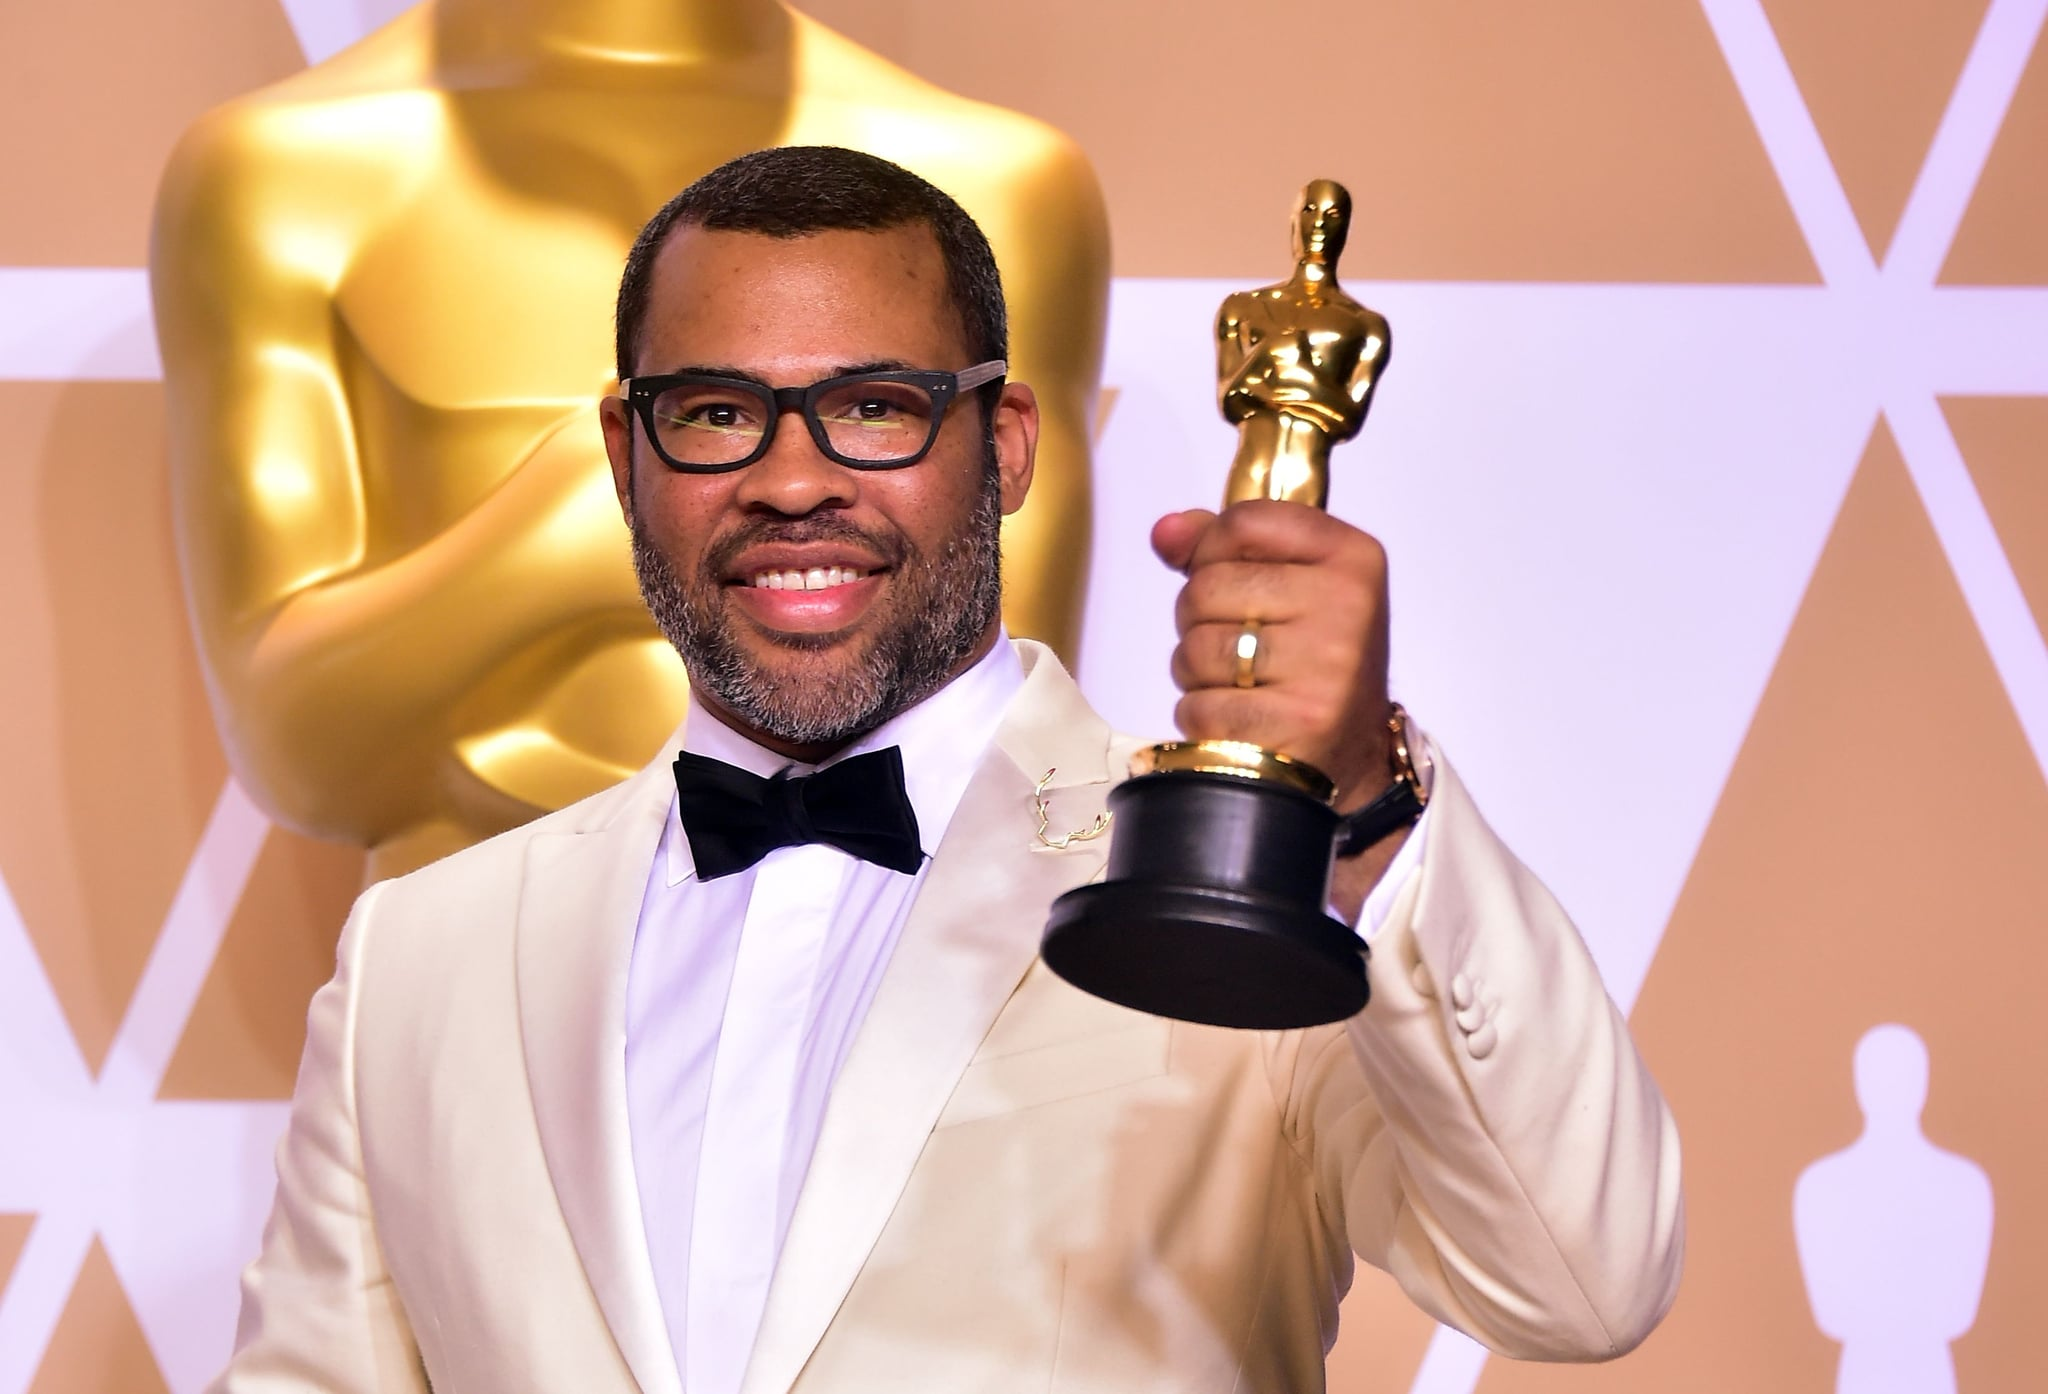 TOPSHOT - Director Jordan Peele poses in the press room with the Oscar for best original screenplay during the 90th Annual Academy Awards on March 4, 2018, in Hollywood, California.  / AFP PHOTO / FREDERIC J. BROWN        (Photo credit should read FREDERIC J. BROWN/AFP/Getty Images)